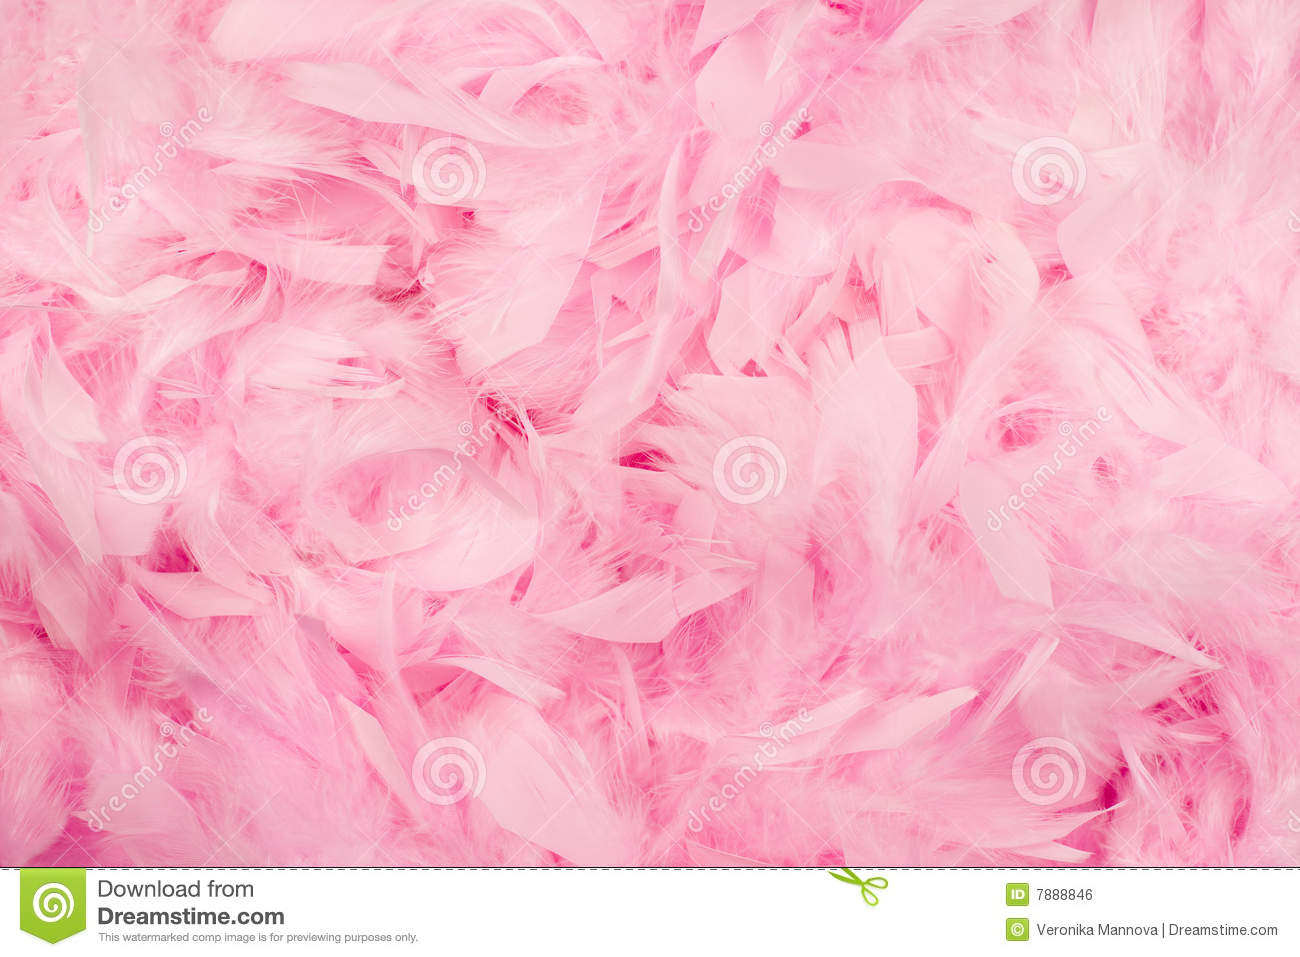 Pink Feathers Background Royalty Free Stock Image - Image: 7888846